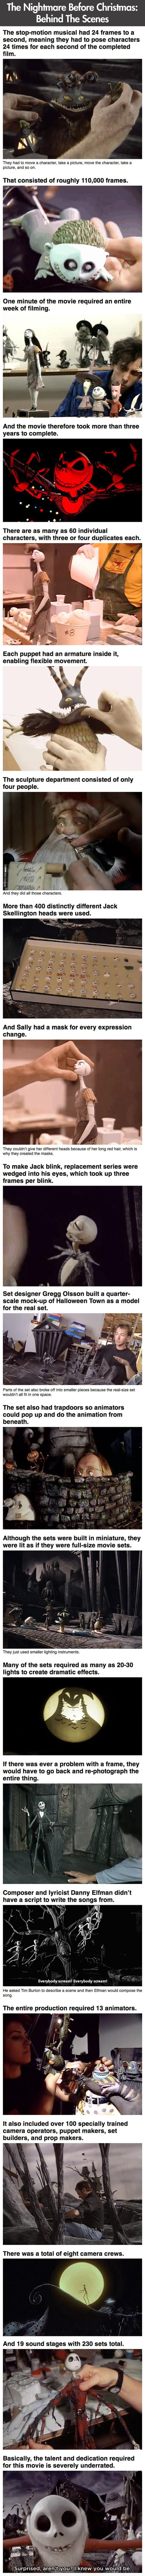 Behind The Scenes Of The Nightmare Before Christmas – 21 Pics